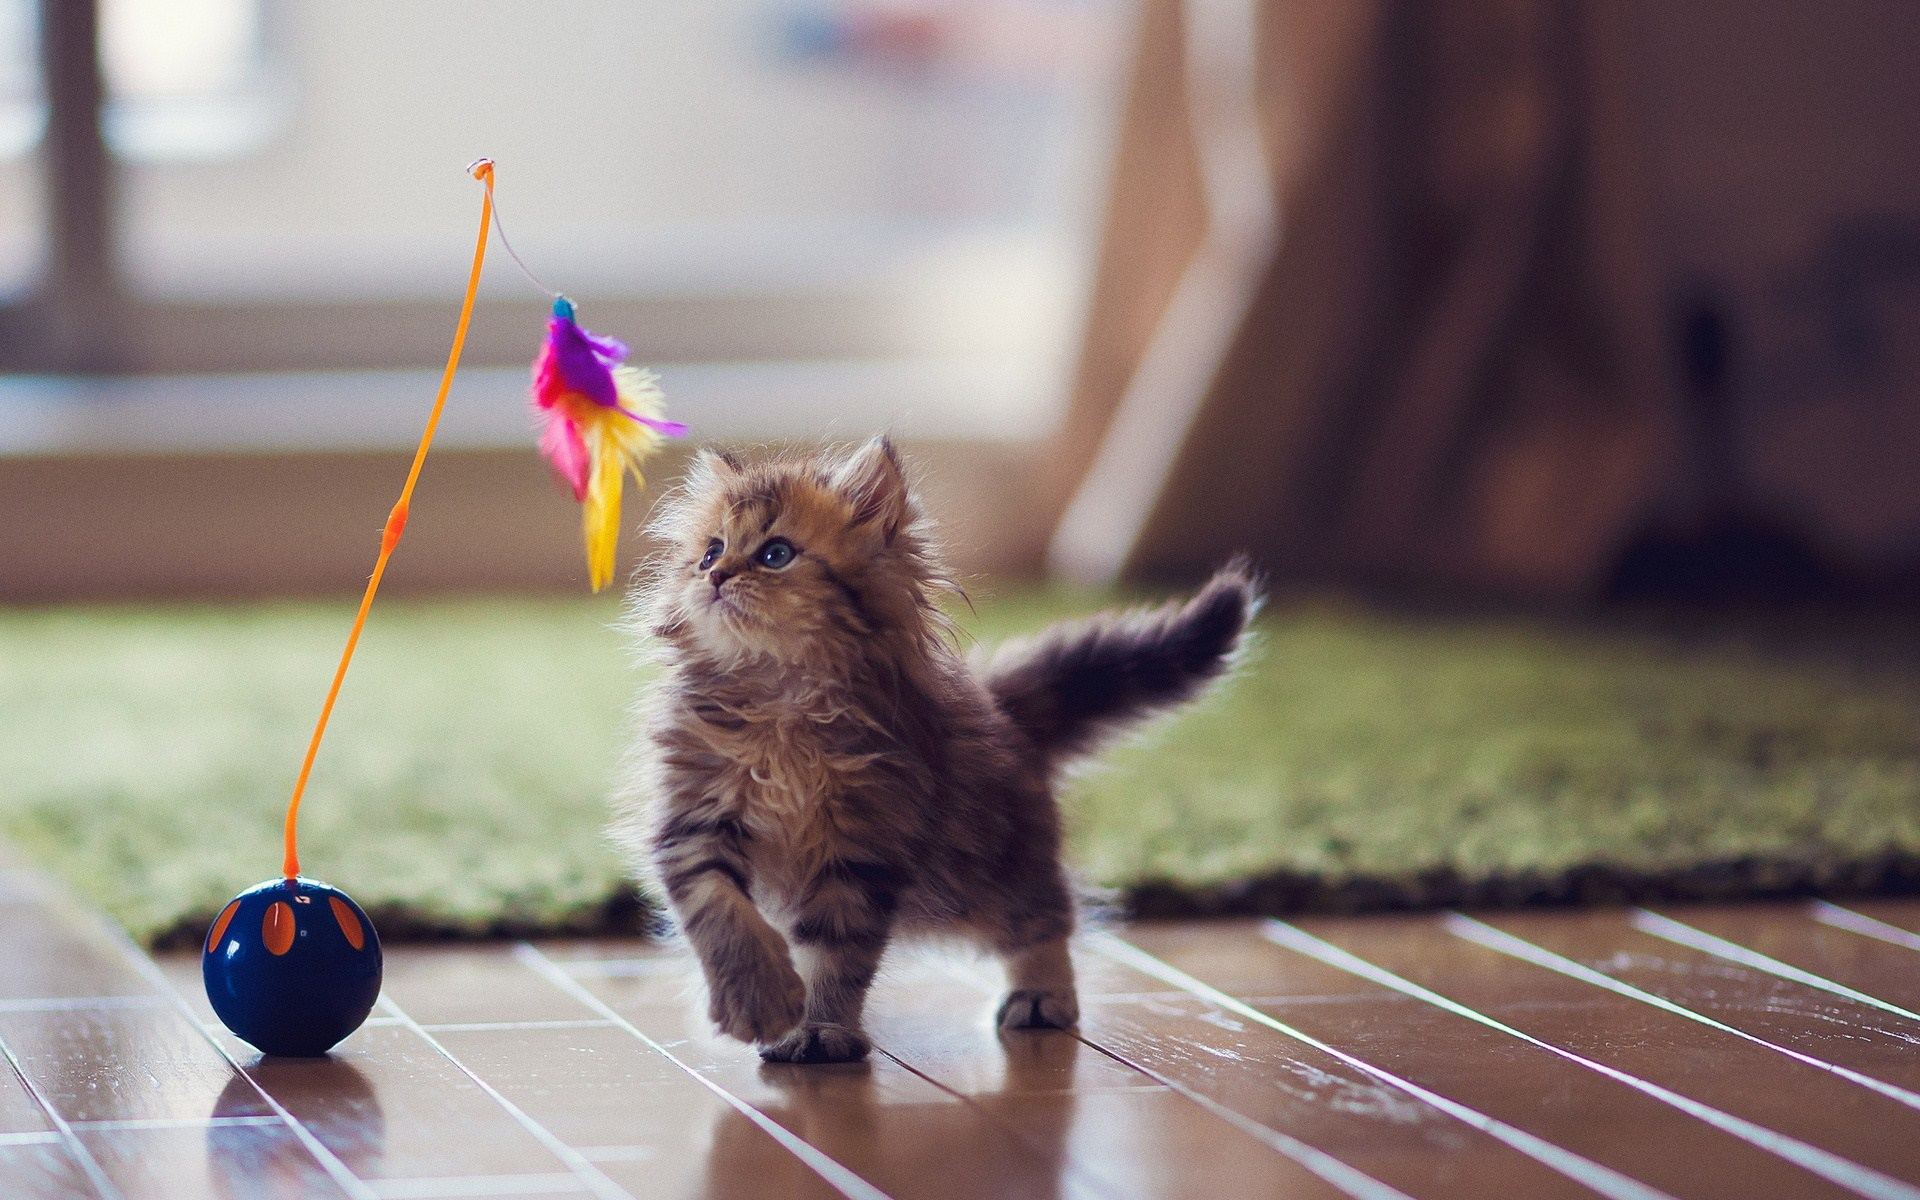 Cute Kitten Play Toy Photo